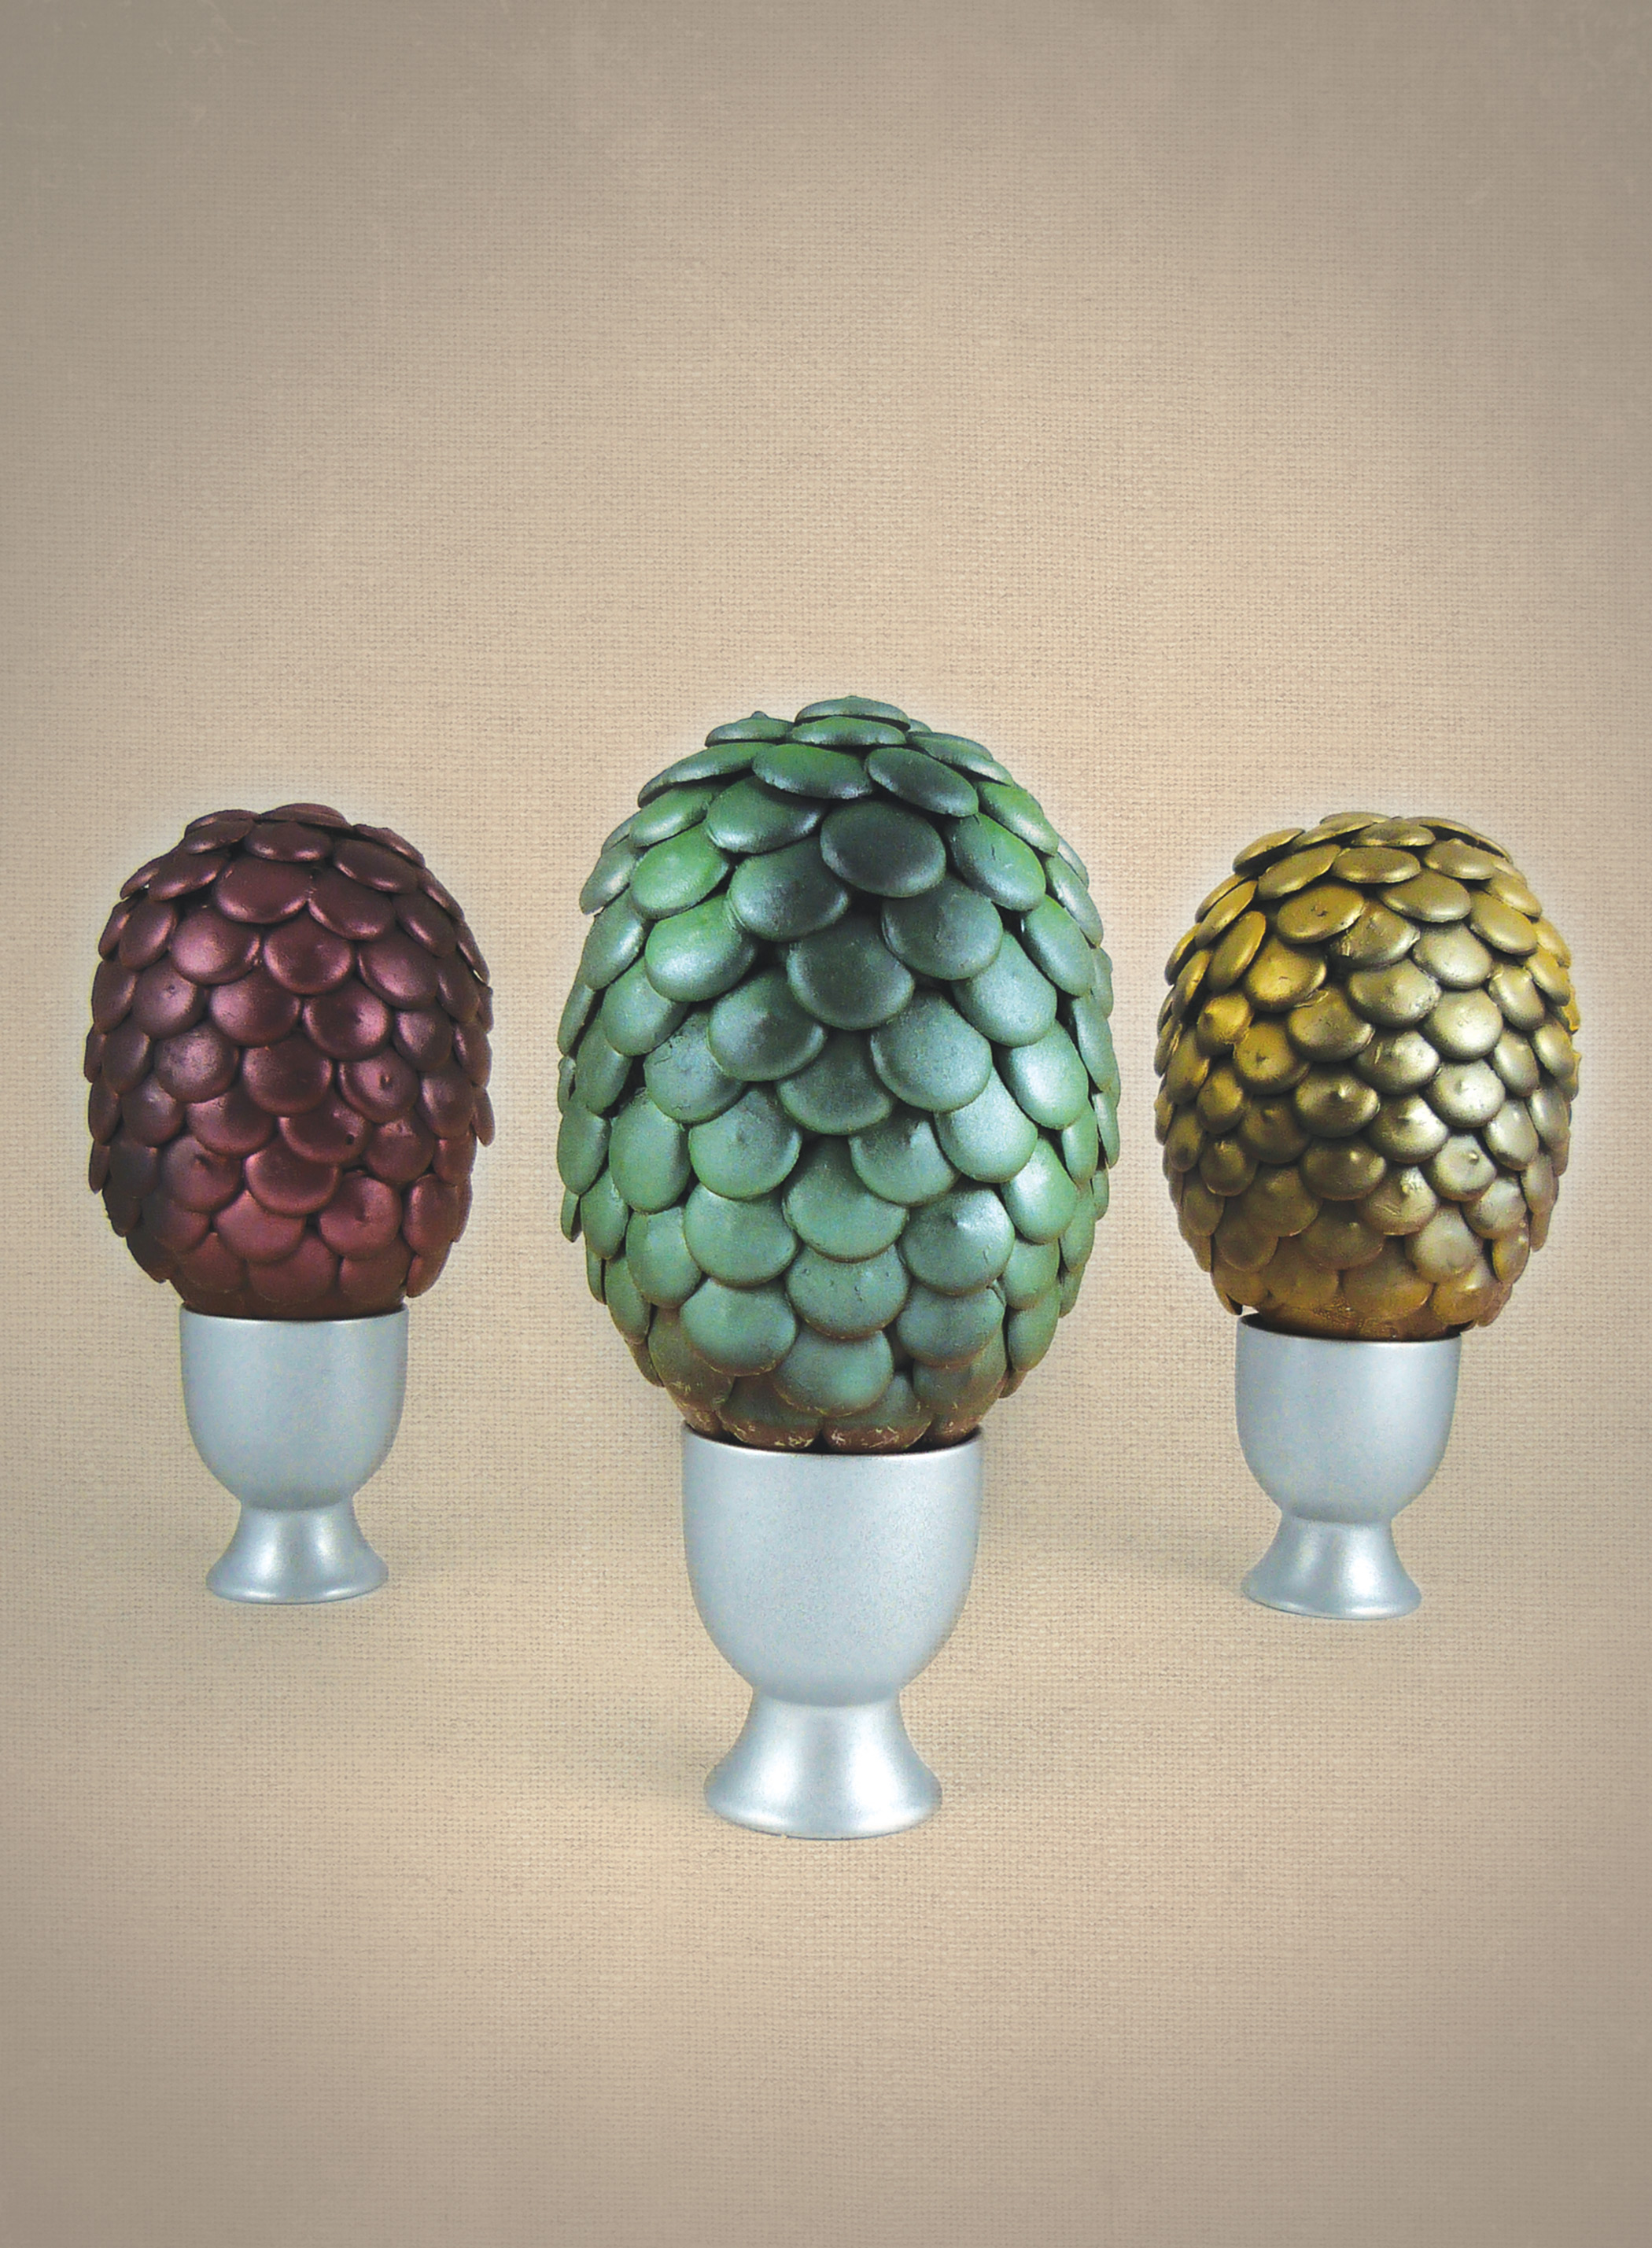 Daenerys' Dragon Eggs from the book  Games of Scones